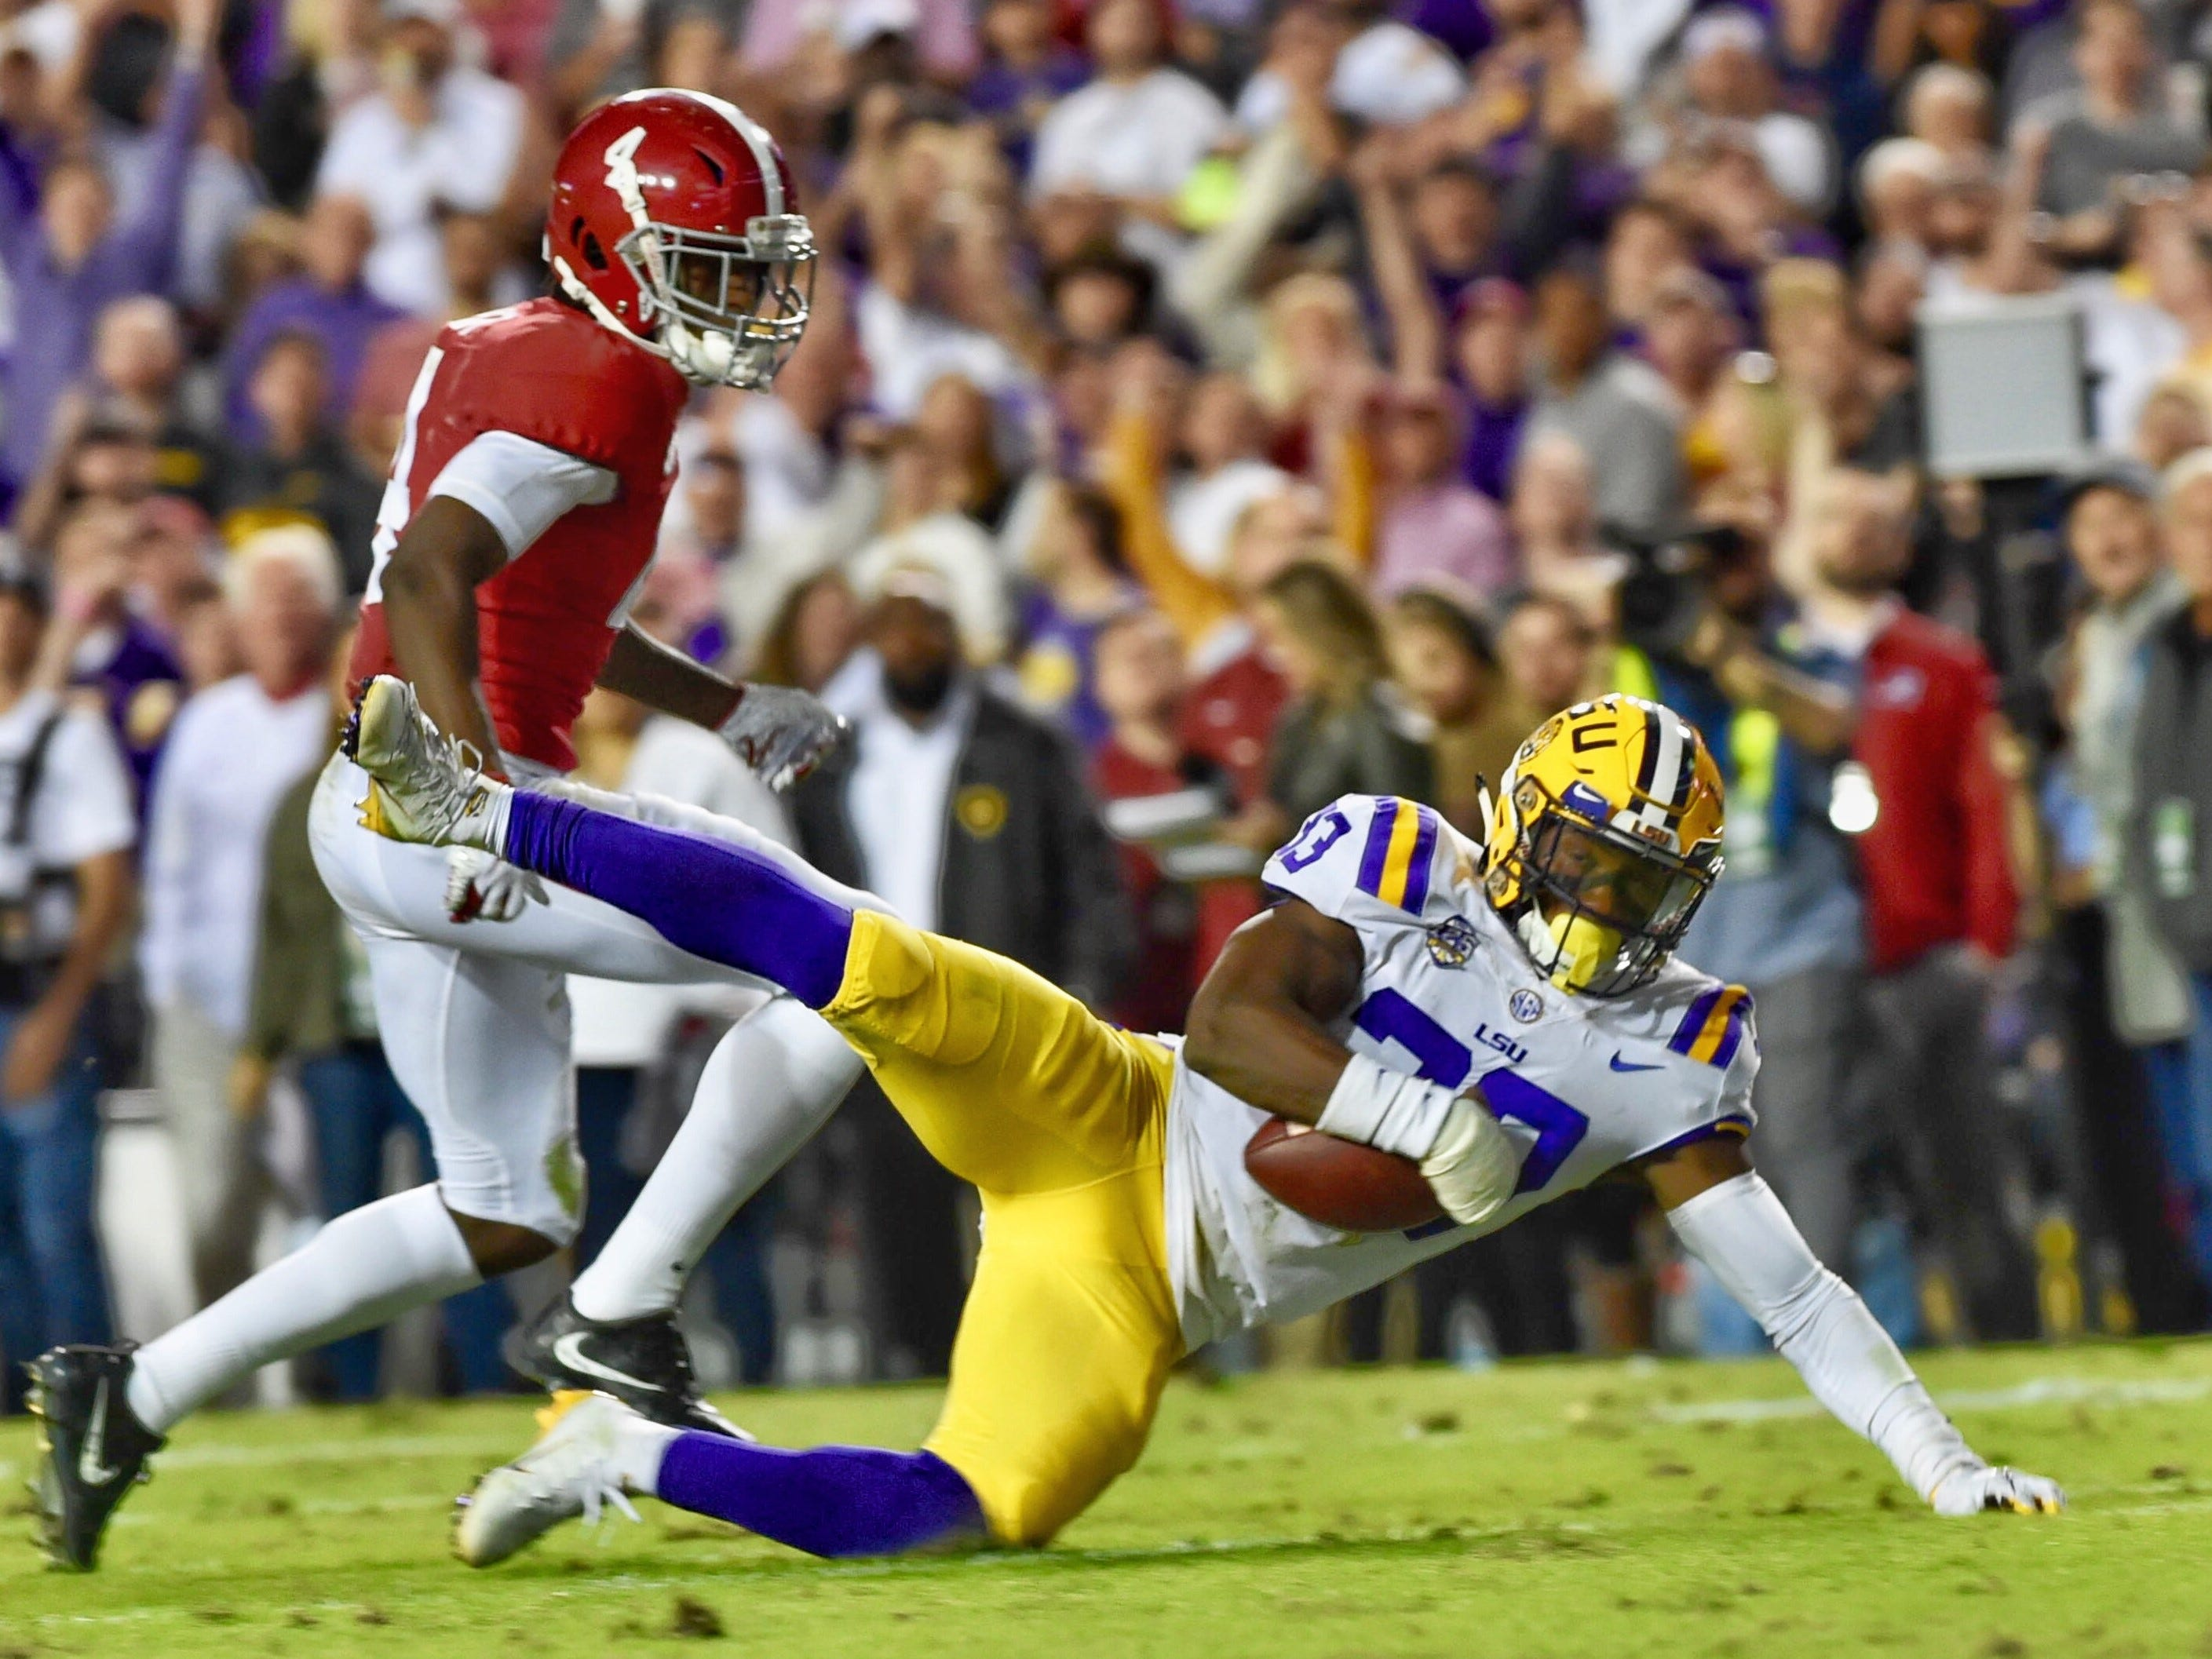 LSU safety Todd Harris Jr. intercepts an Alabama pass as the Tigers take on the Crimson Tide at Tiger Stadium Saturday Nov. 3, 2018.